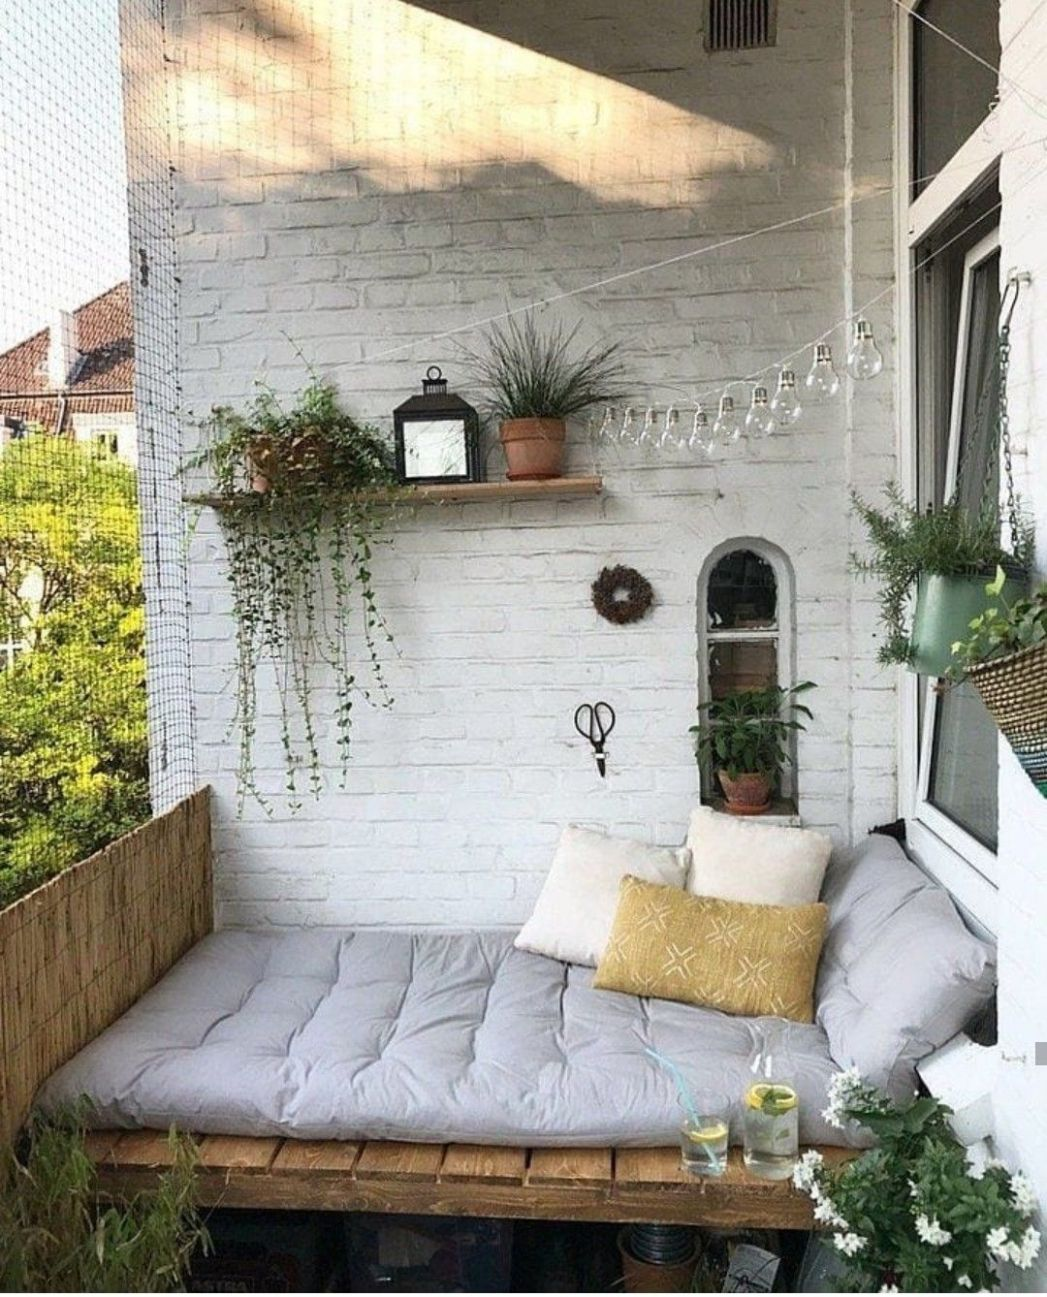 Cozy garden or porch nook for sitting and relaxing | Apartment ..